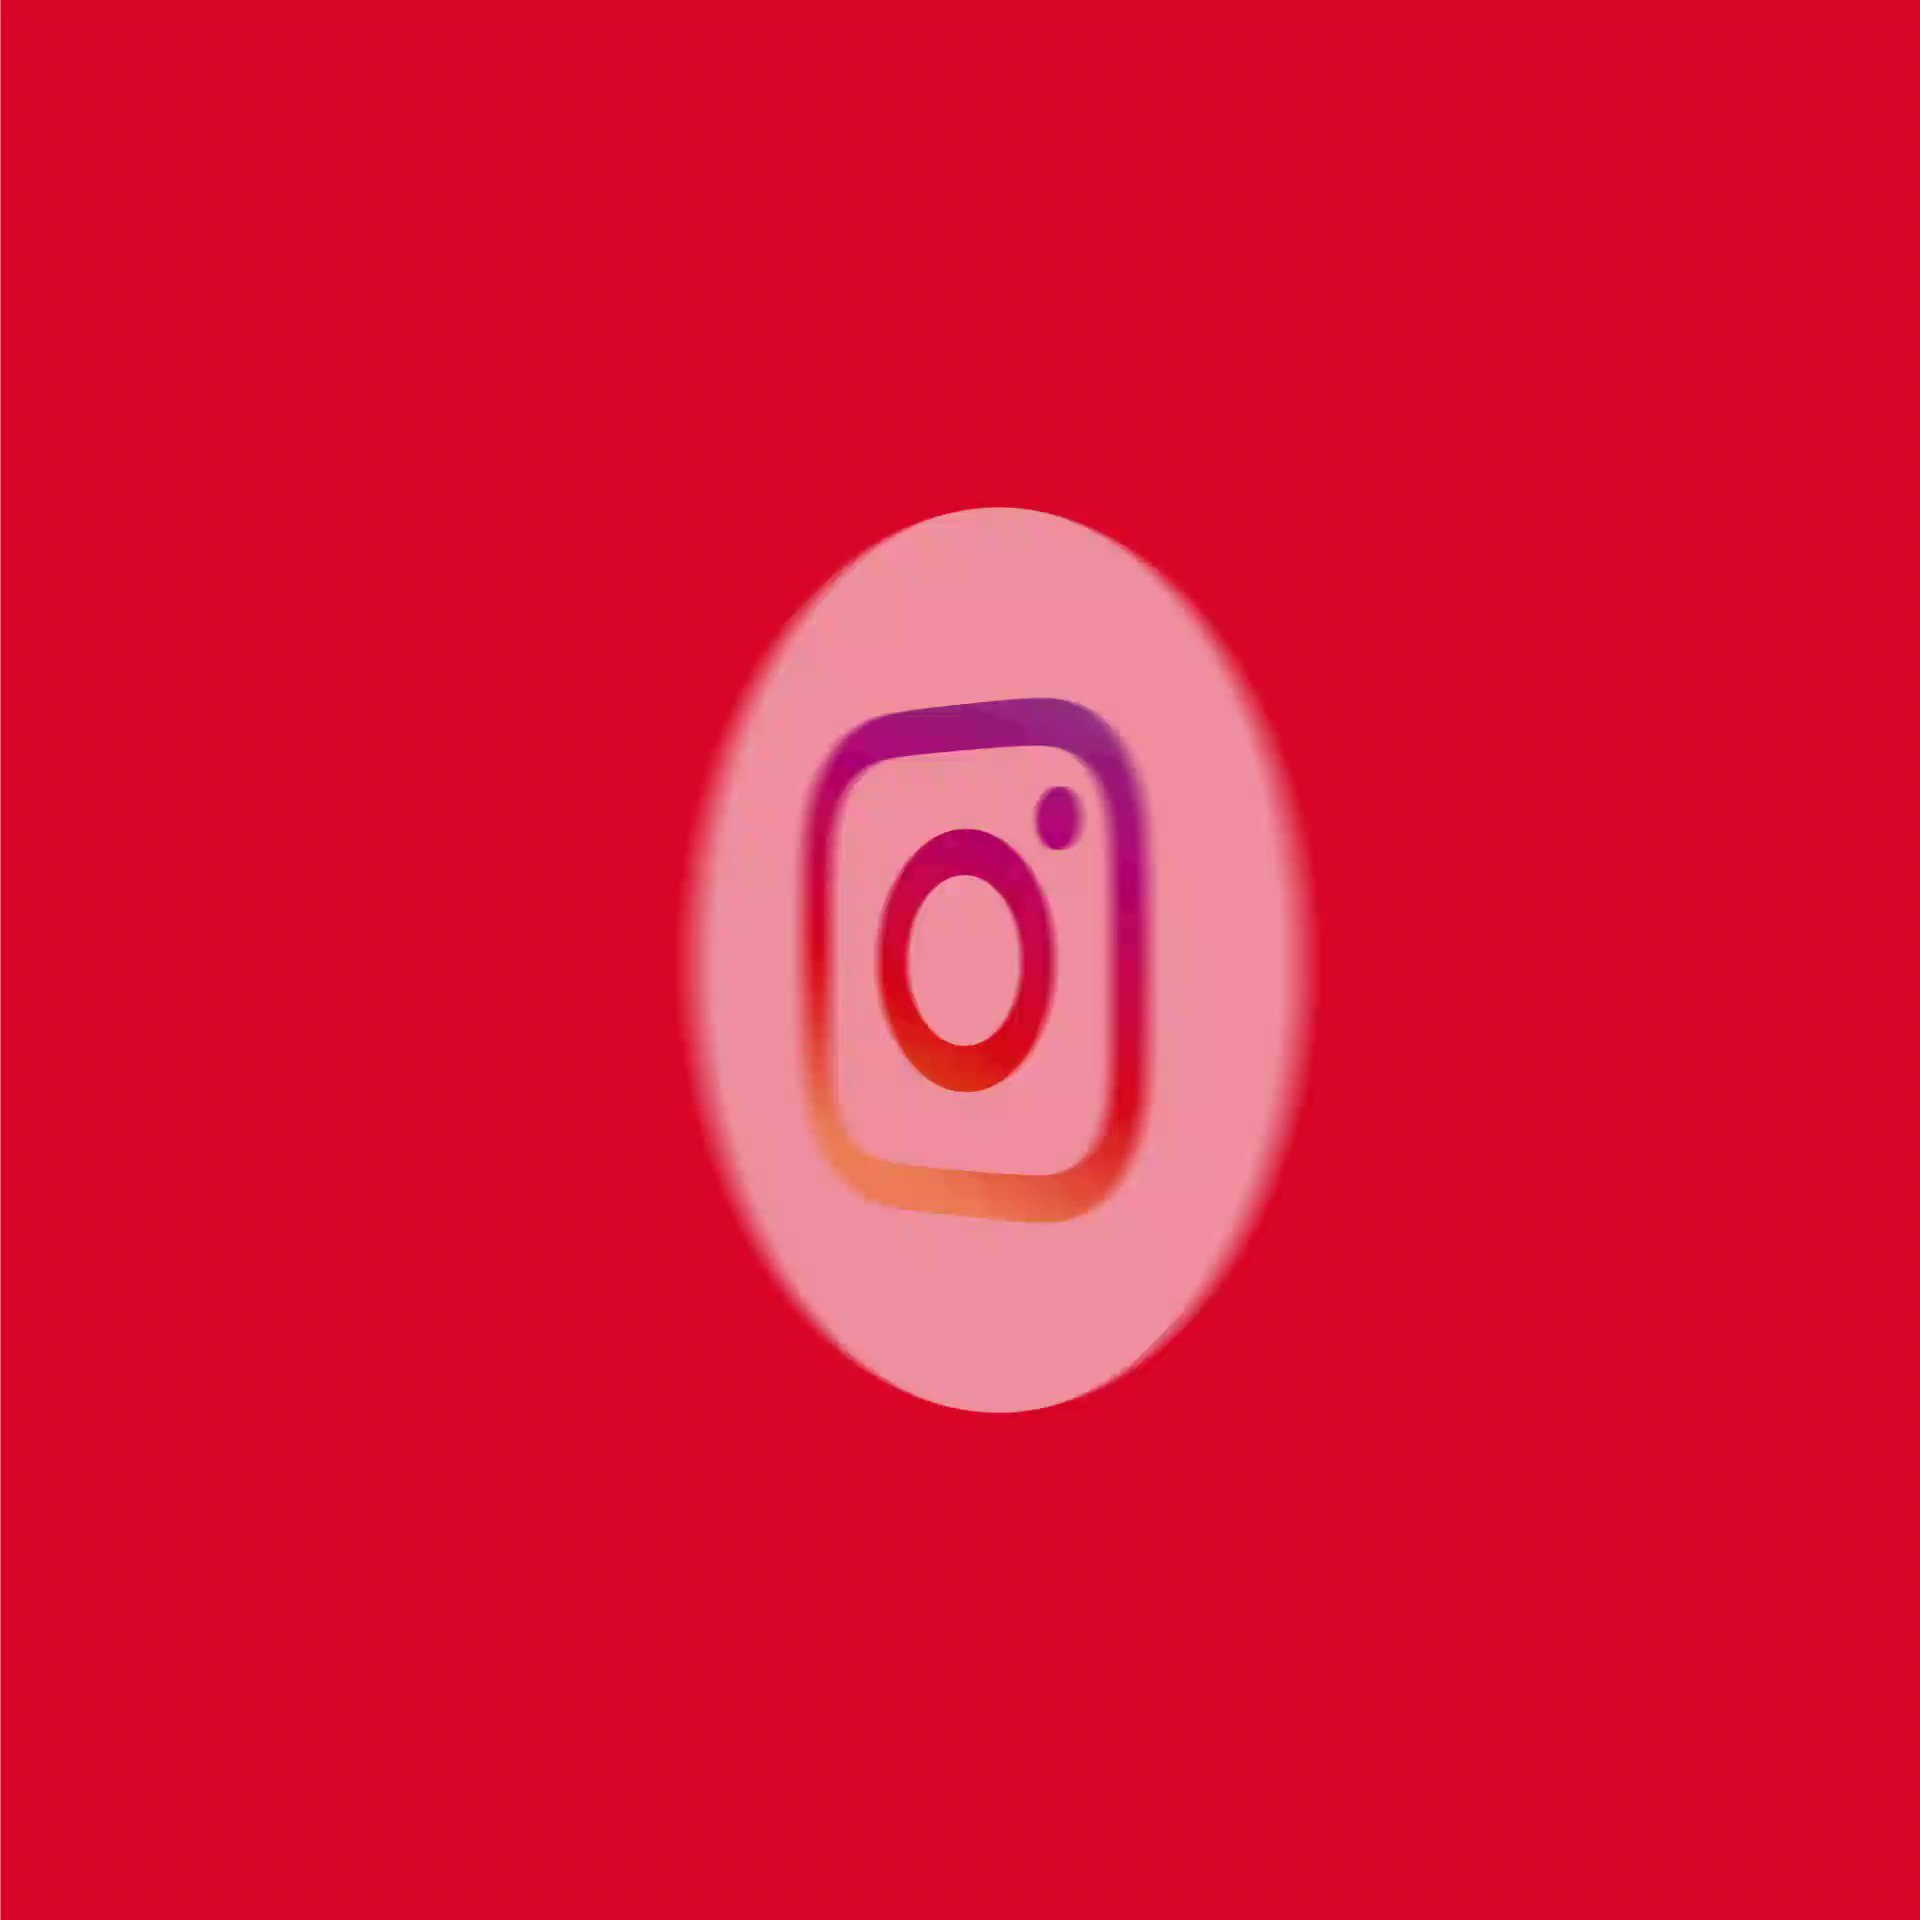 Did you know that we are also on Instagram?  Check out our page and give us a follow - https://t.co/agwhh83iVj https://t.co/QLk2hmqrcw